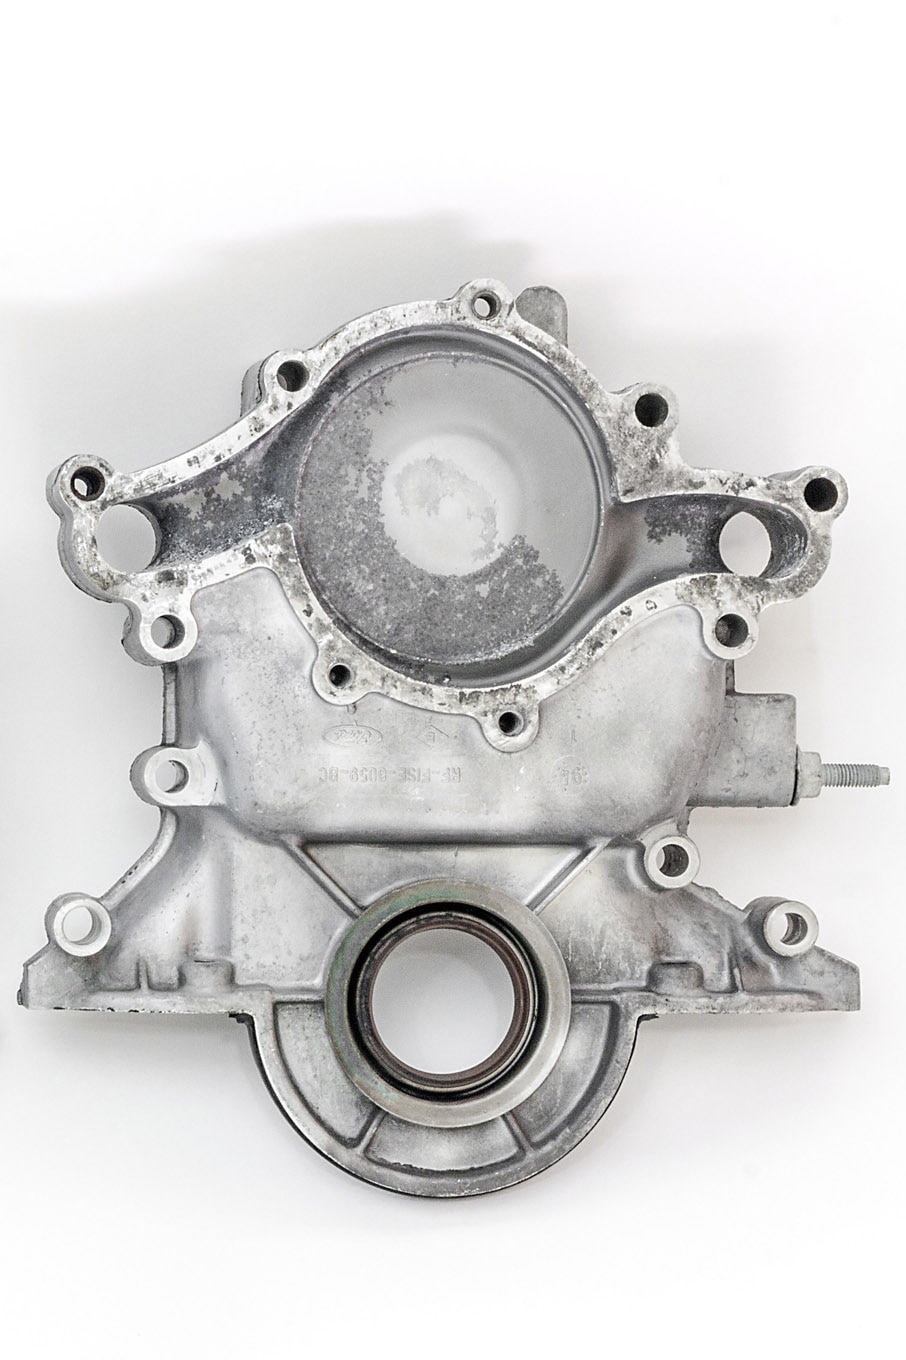 small resolution of 10 so called explorer water pumps don t have a backing plate instead they bolt directly to this unique timing cover